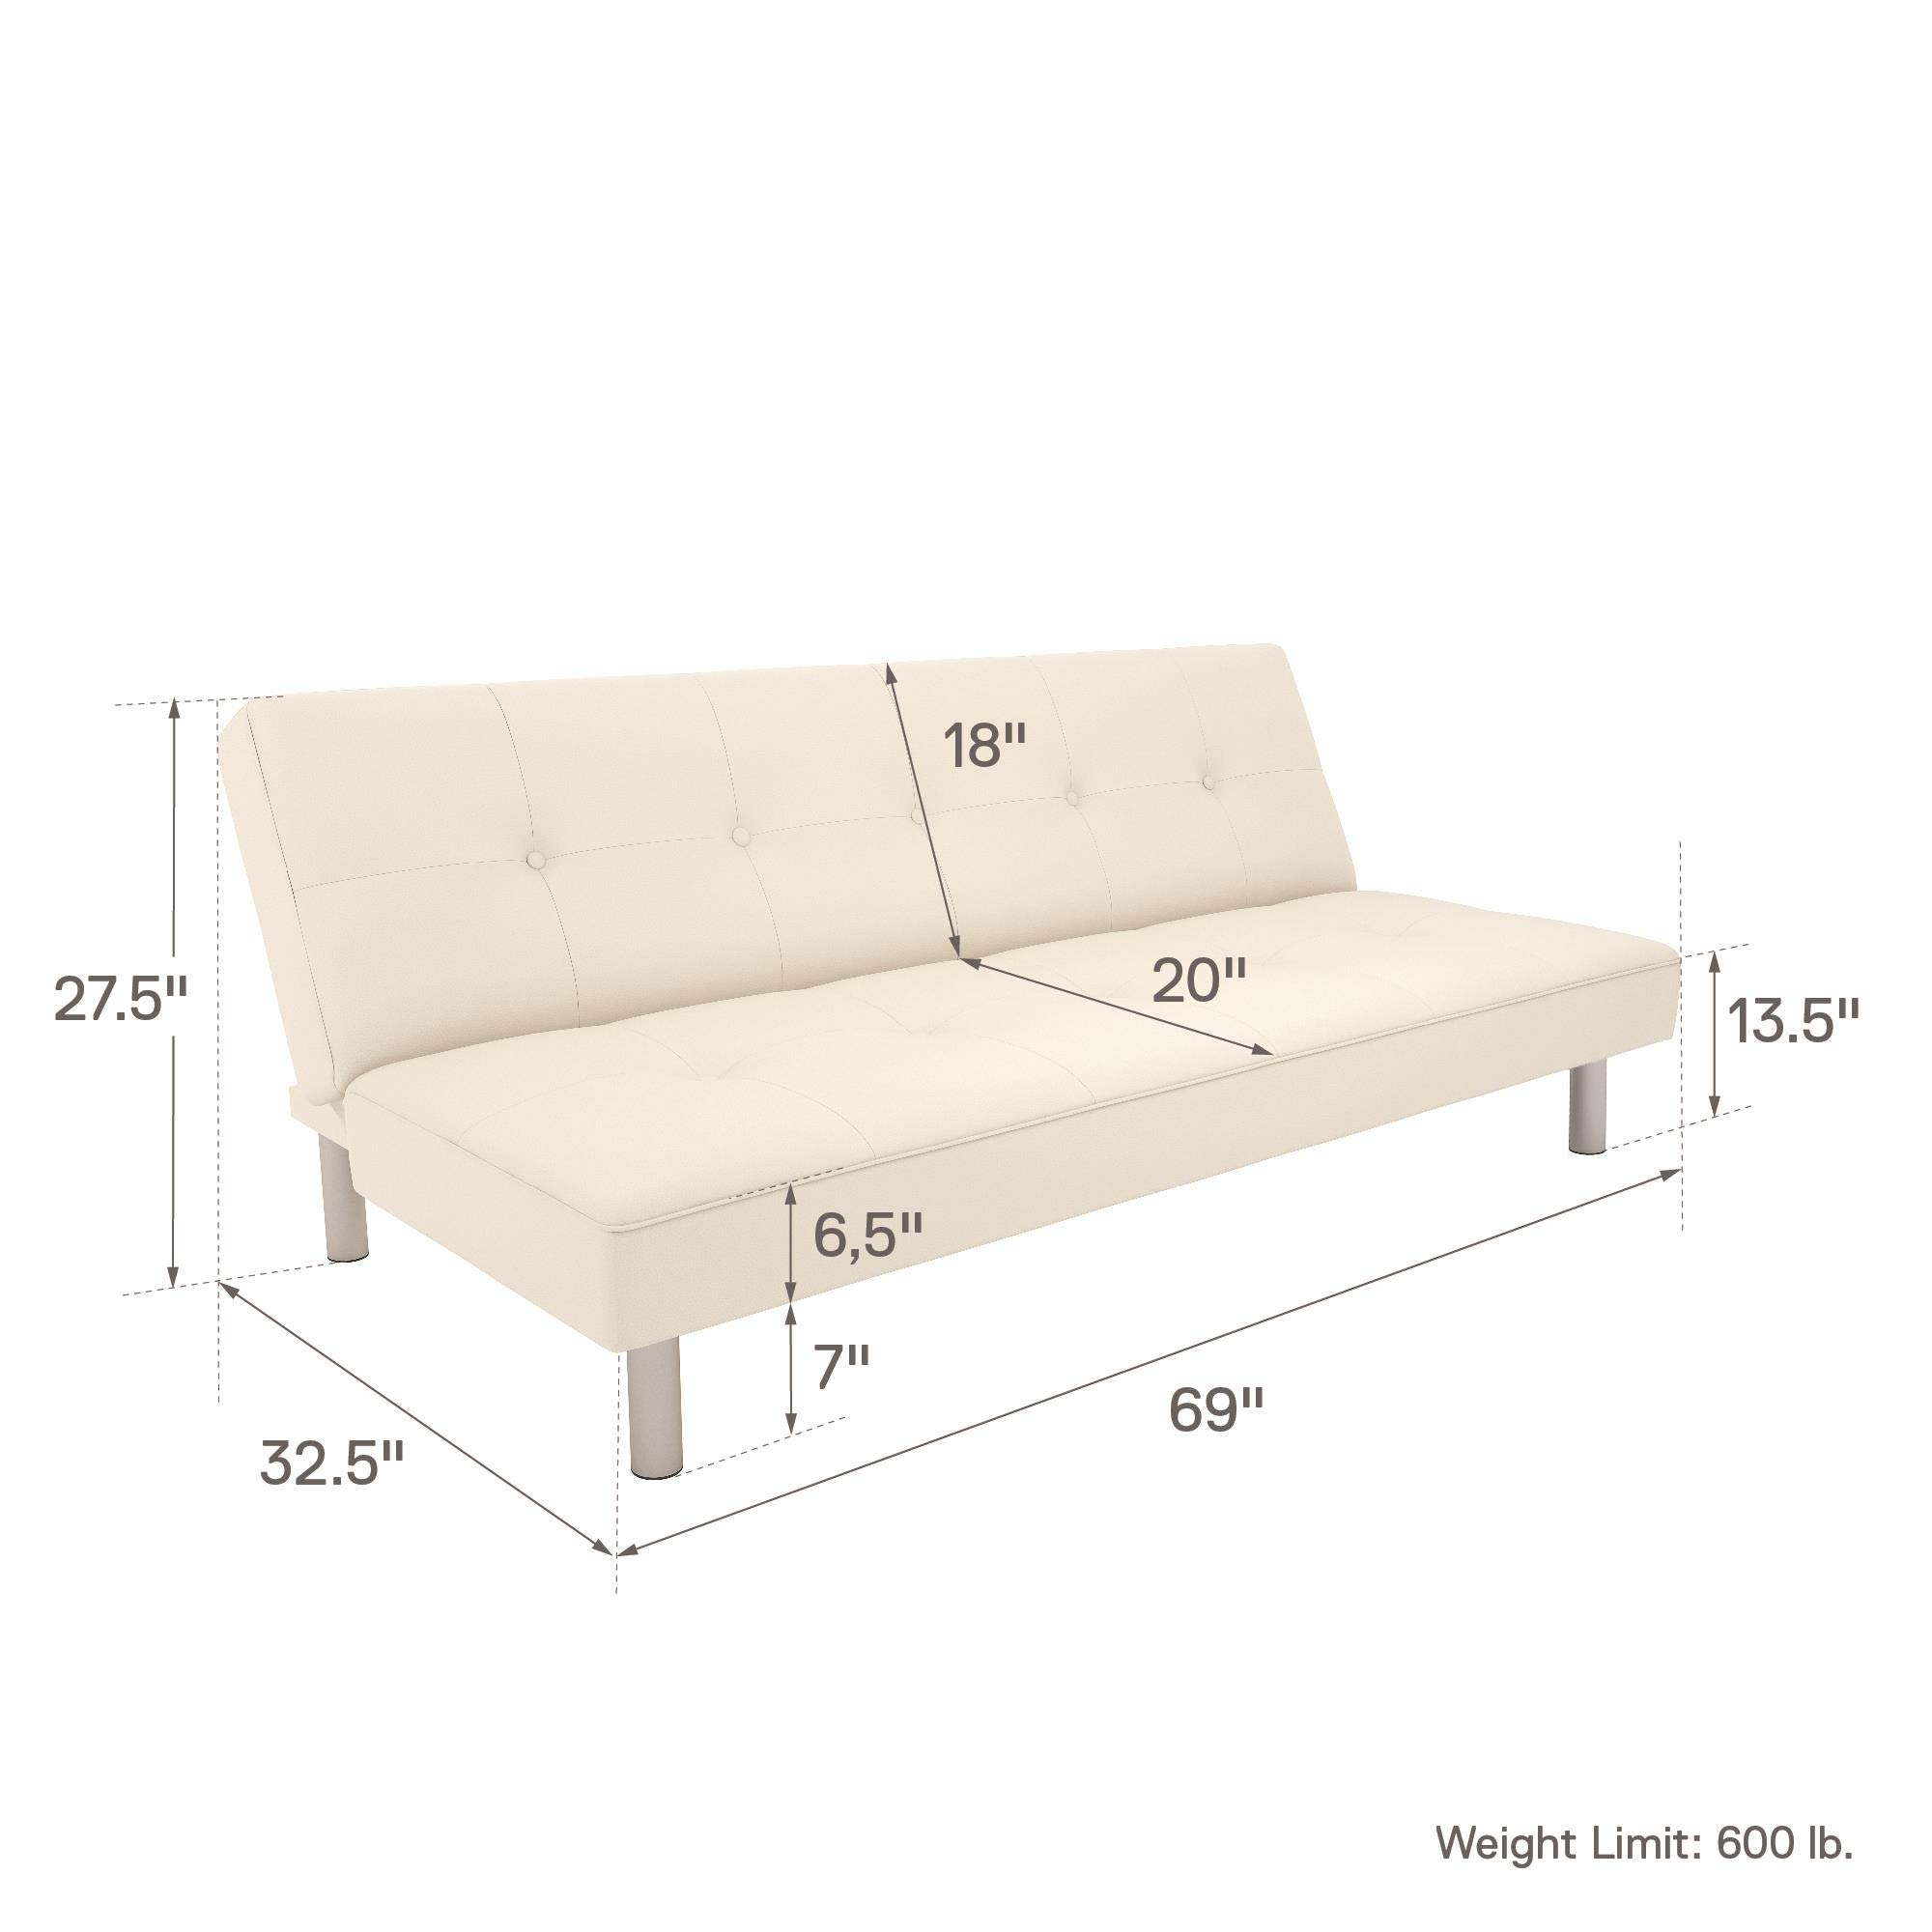 DHP Nola Futon Couch with Tufted Faux Leather Upholstery, Modern Style, White Faux Leather by DHP (Image #8)